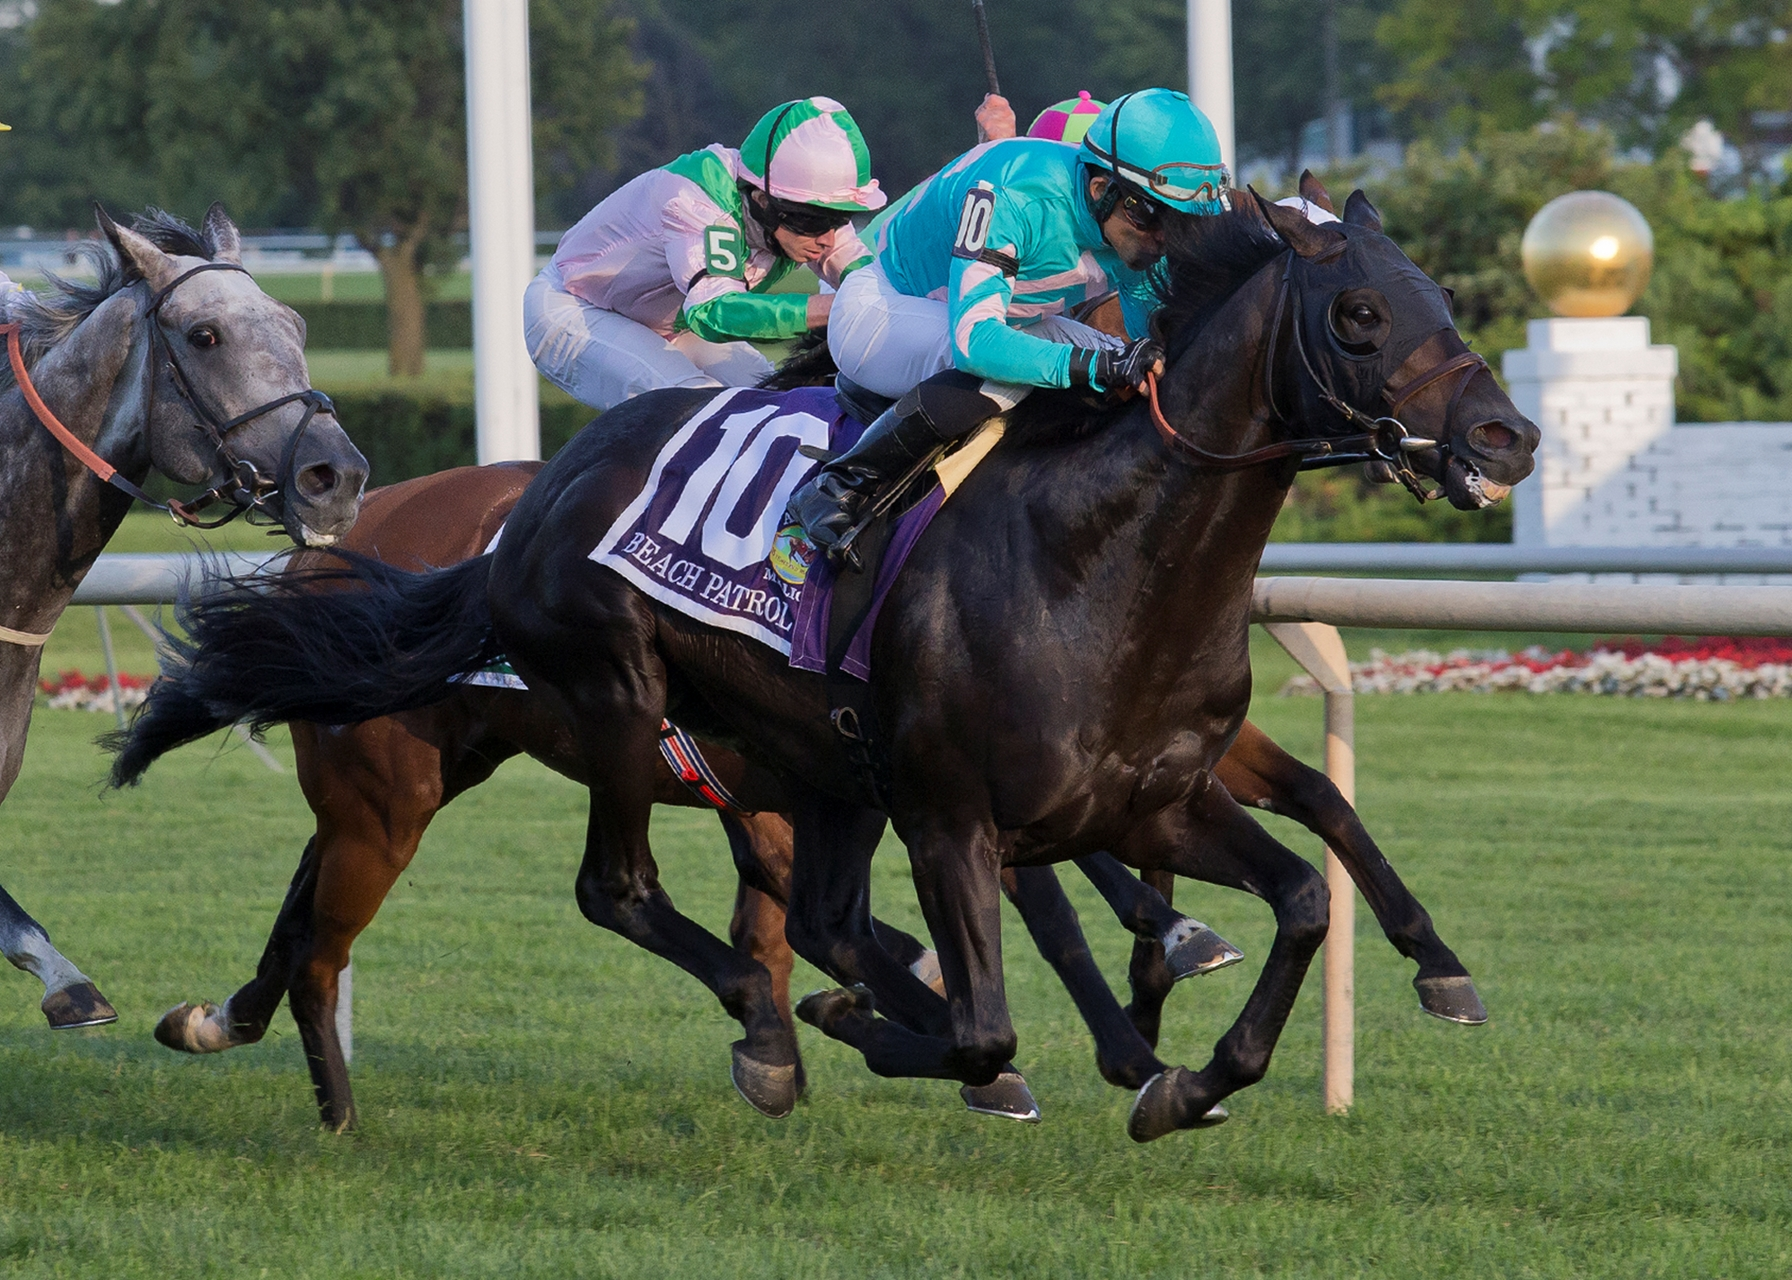 Beach Patrol Wins Arlington Million